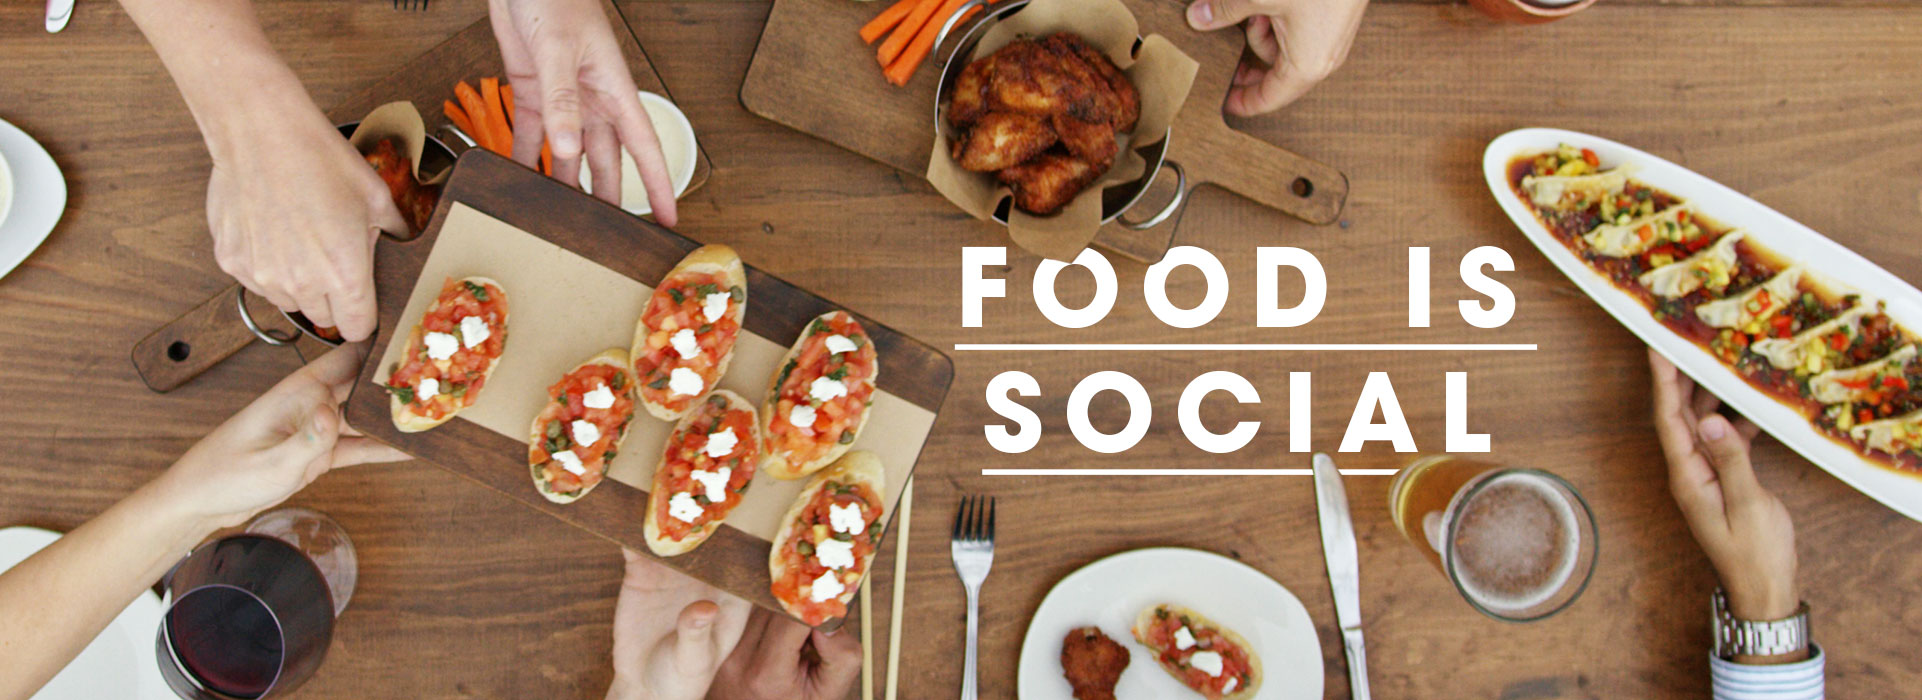 Food is Social - Moxie's Grill & Bar